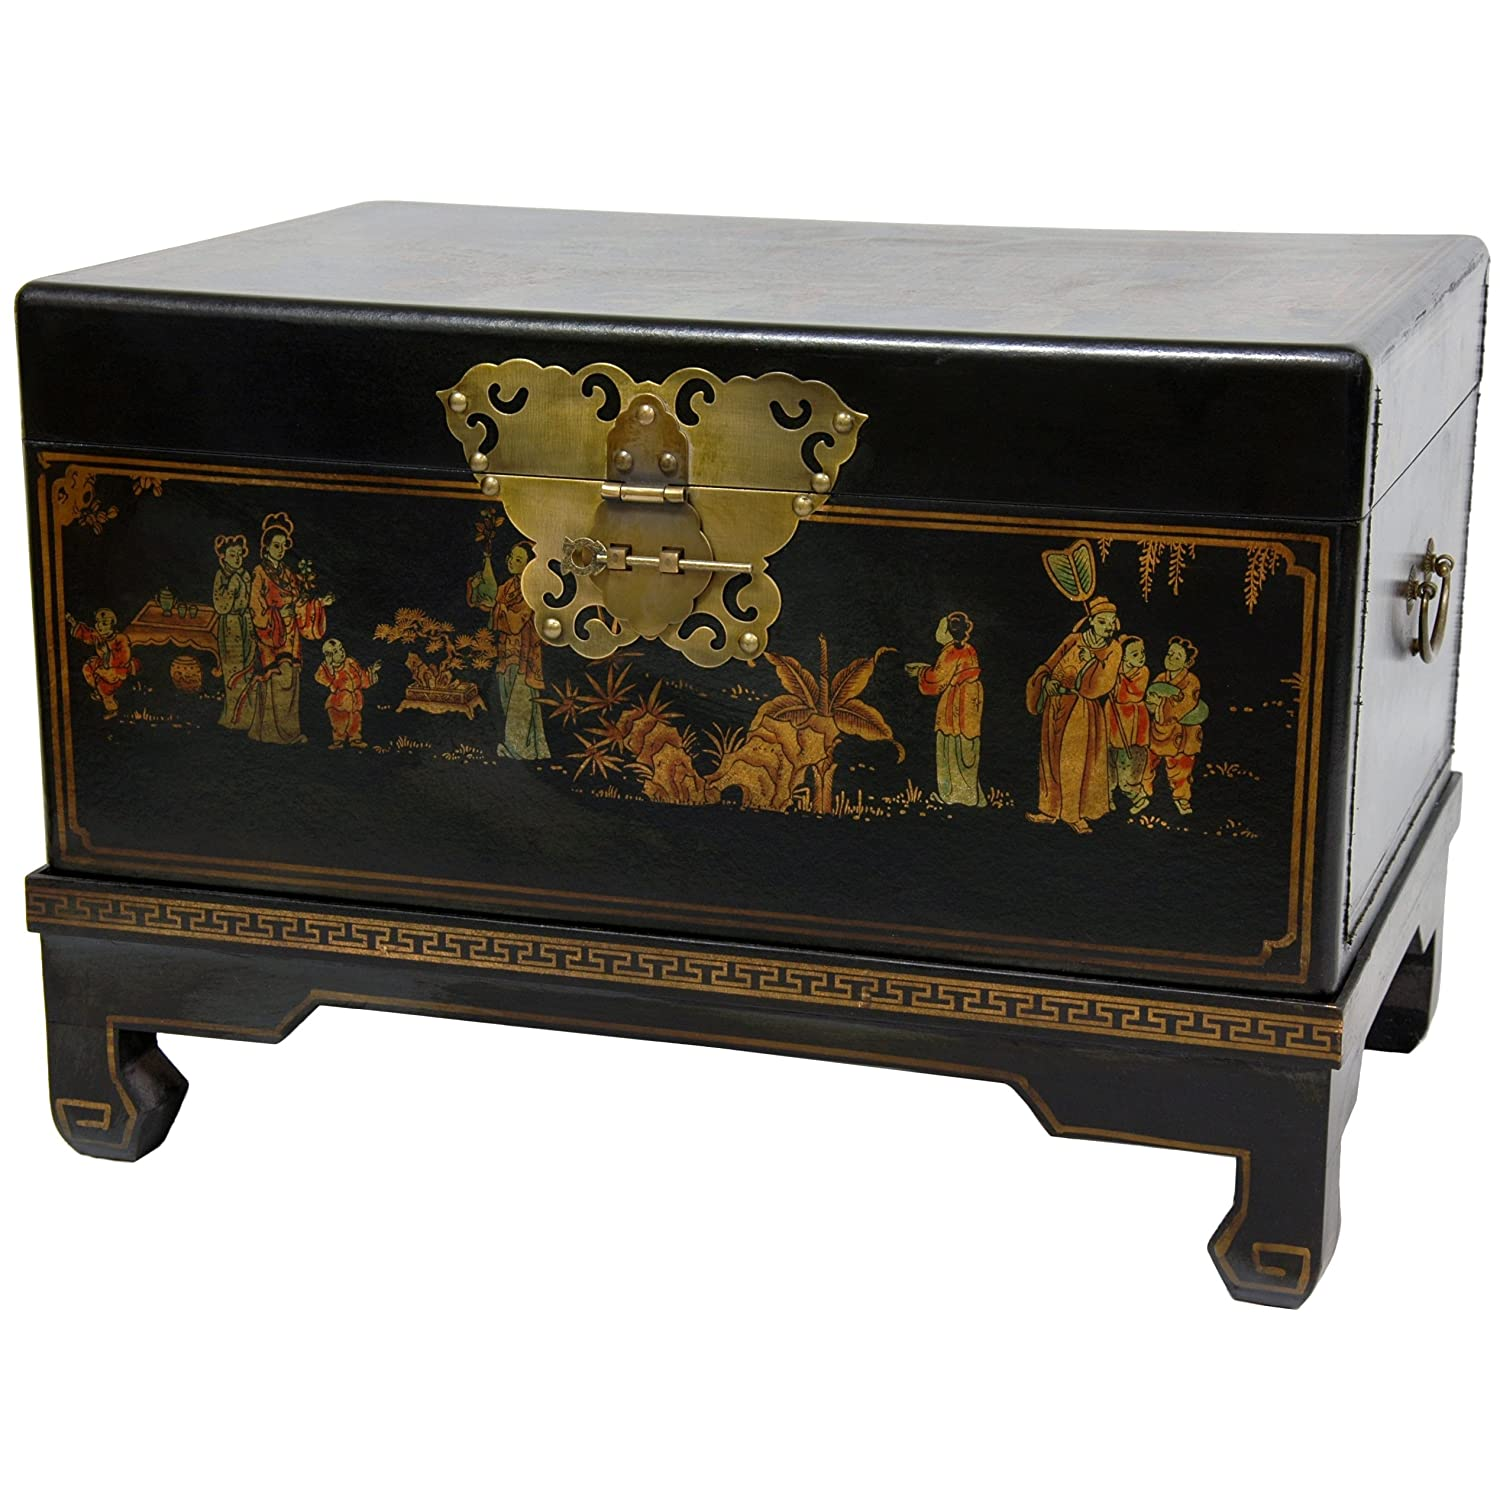 Amazon.com: Oriental Furniture Black Lacquer Small Trunk: Home U0026 Kitchen